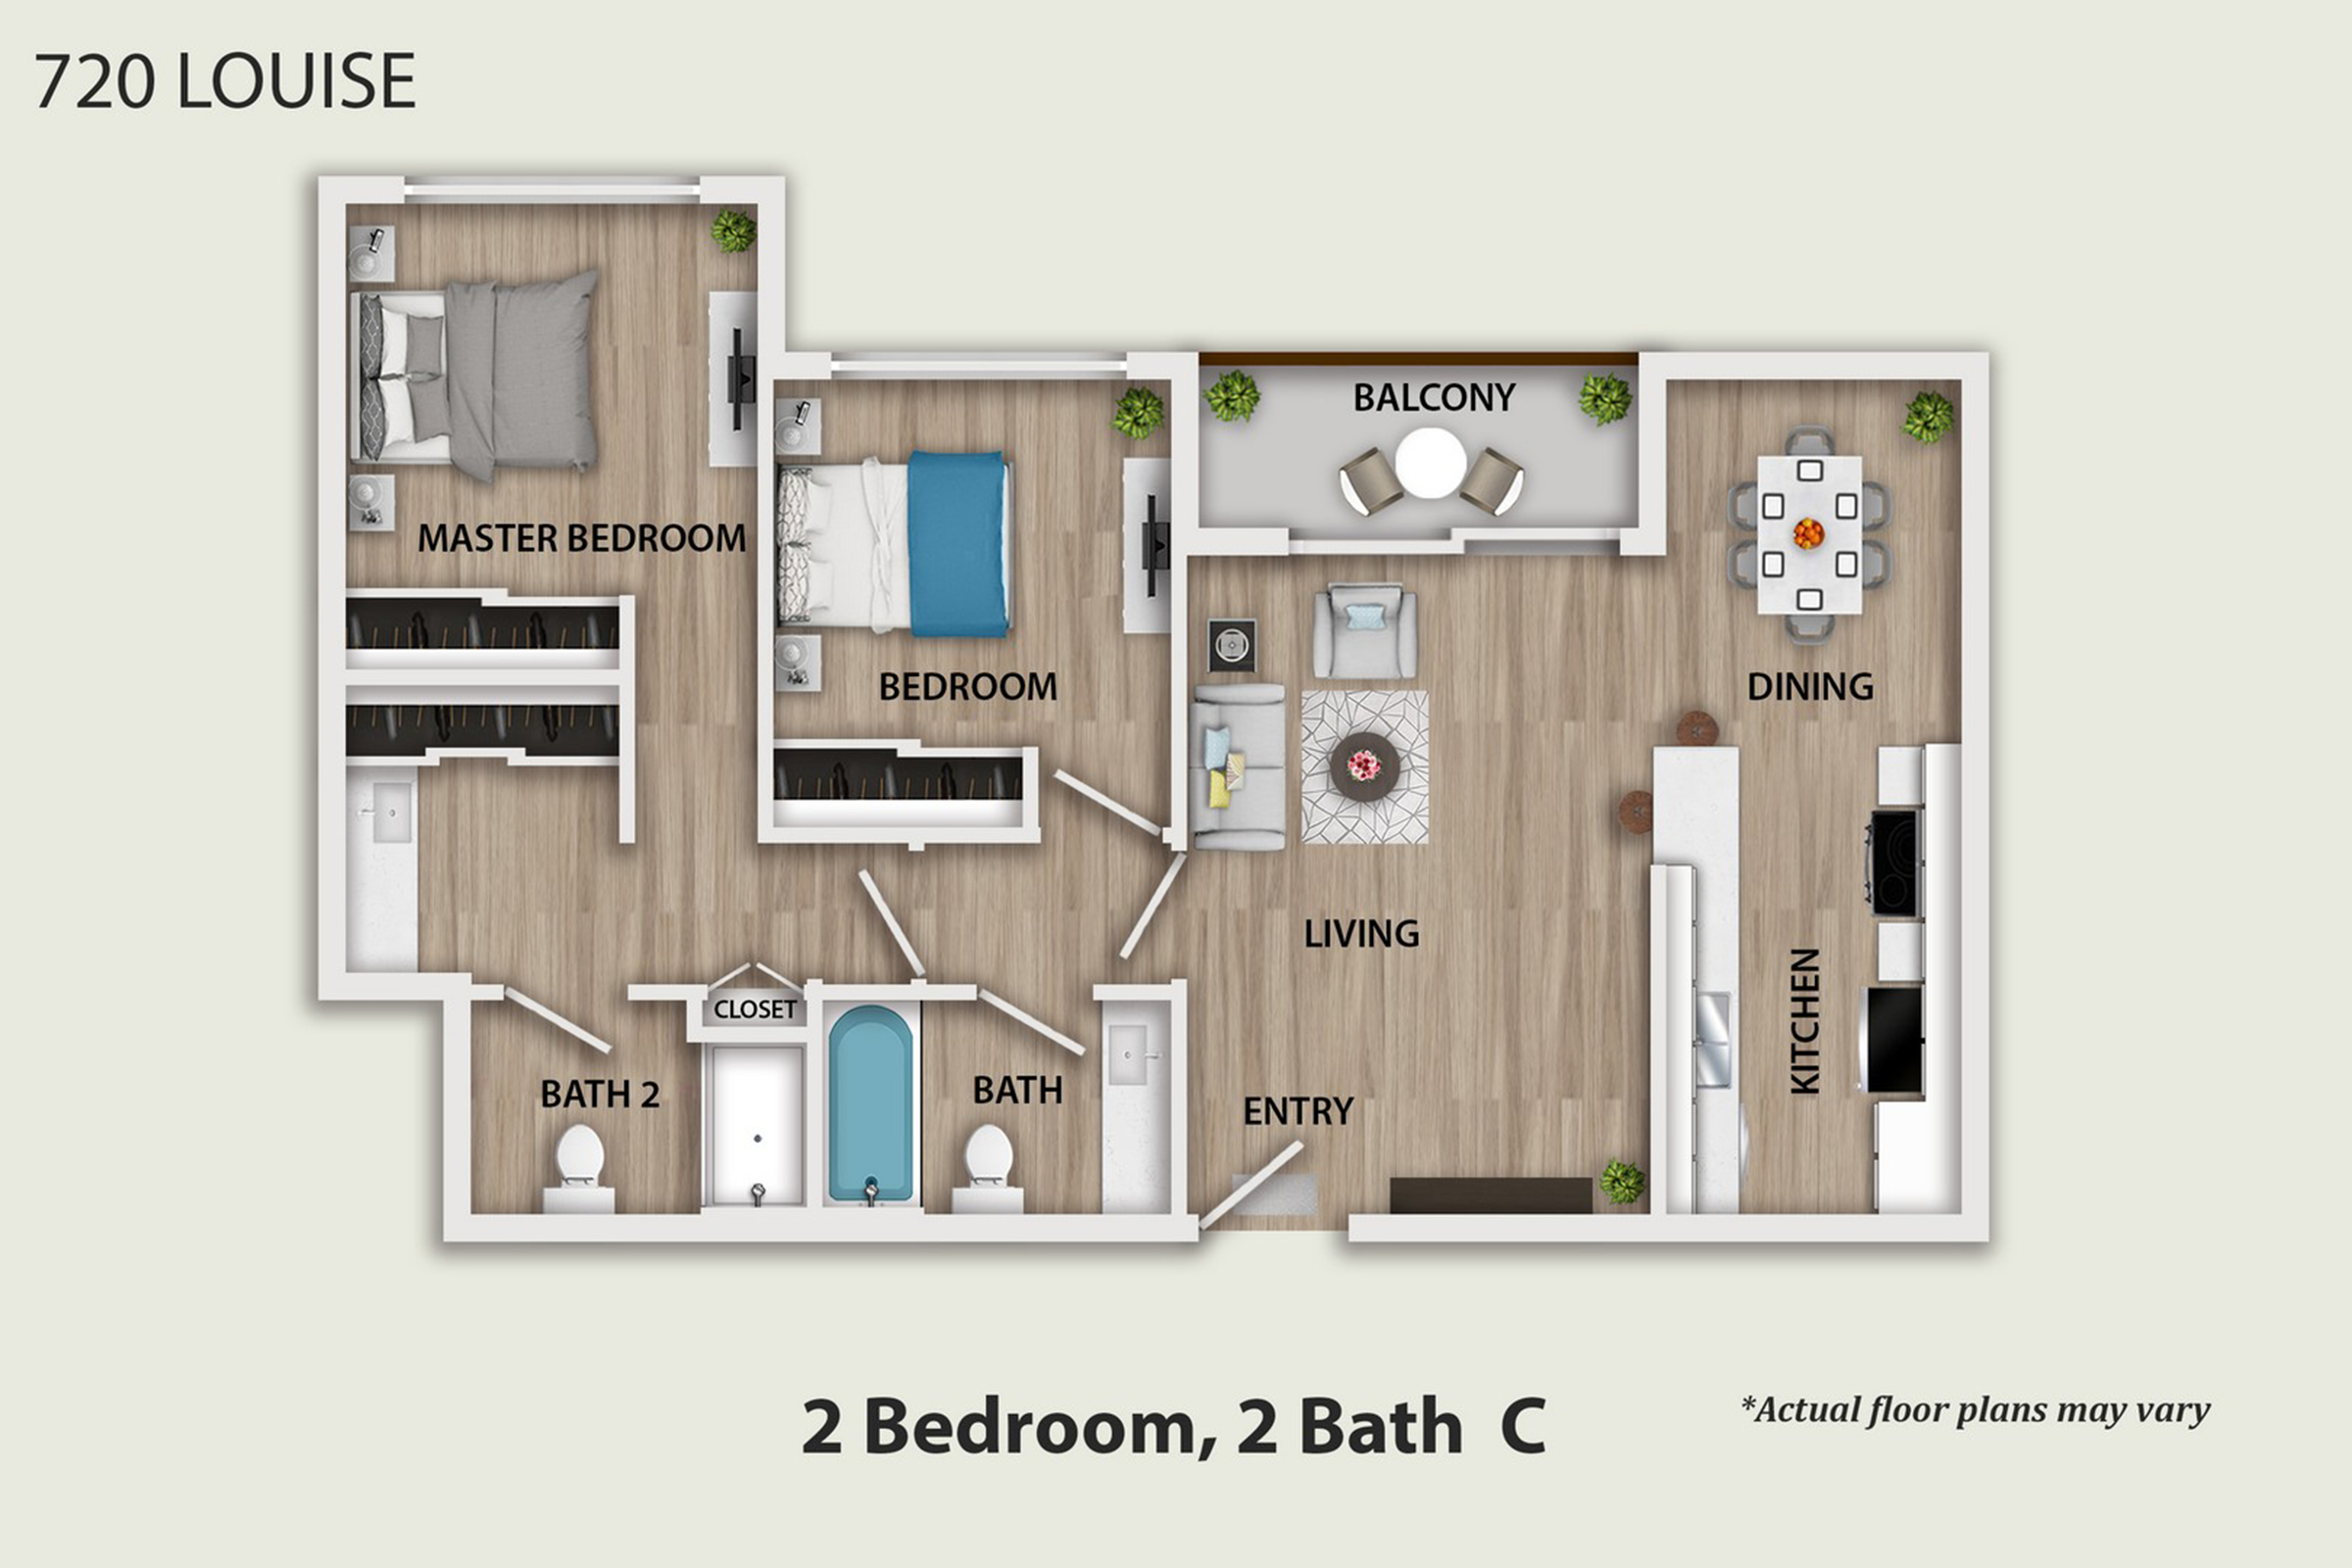 Comfortable Two Bedroom Apartments in Glendale CA